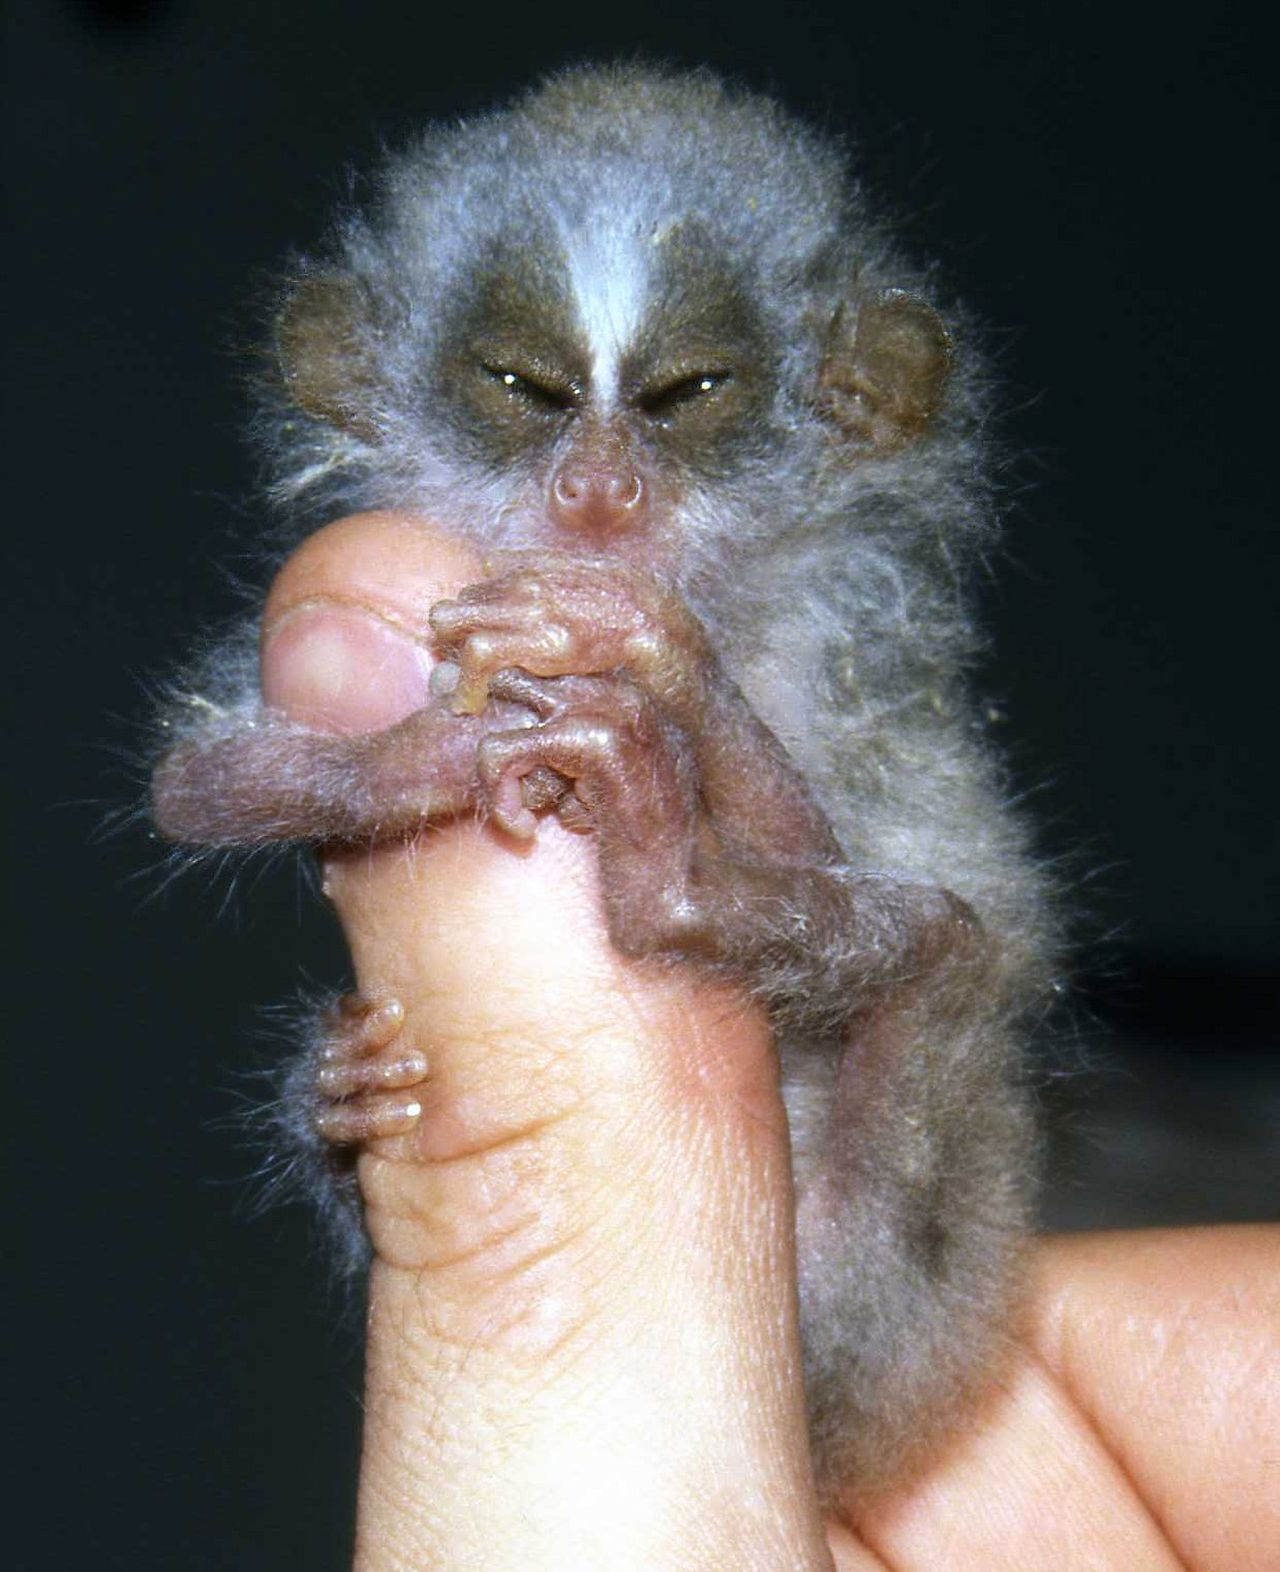 Slanke lori-jong Foto Reuters PICTURE EMBARGOED 0001GMT UNTIL JANUARY 16, 2007. A baby Slender Loris is seen in this undated handout image released by the Zoological Society of London on January 15, 2007. Scientists launched a bid on Tuesday to save some of the world's rarest and most neglected creatures from extinction. With an initial list of just 10, including a venomous shrew-like creature, an egg-laying mammal and the world's smallest bat, the programme will give last ditch conservation aid where to date there has been little or none. FOR EDITORIAL USE ONLY NO ARCHIVES NO SALES NOT FOR SALE FOR MARKETING OR ADVERTISING CAMPAIGNS TEMPLATE OUT REUTERS/Zoological Society of London/Handout (BRITAIN)